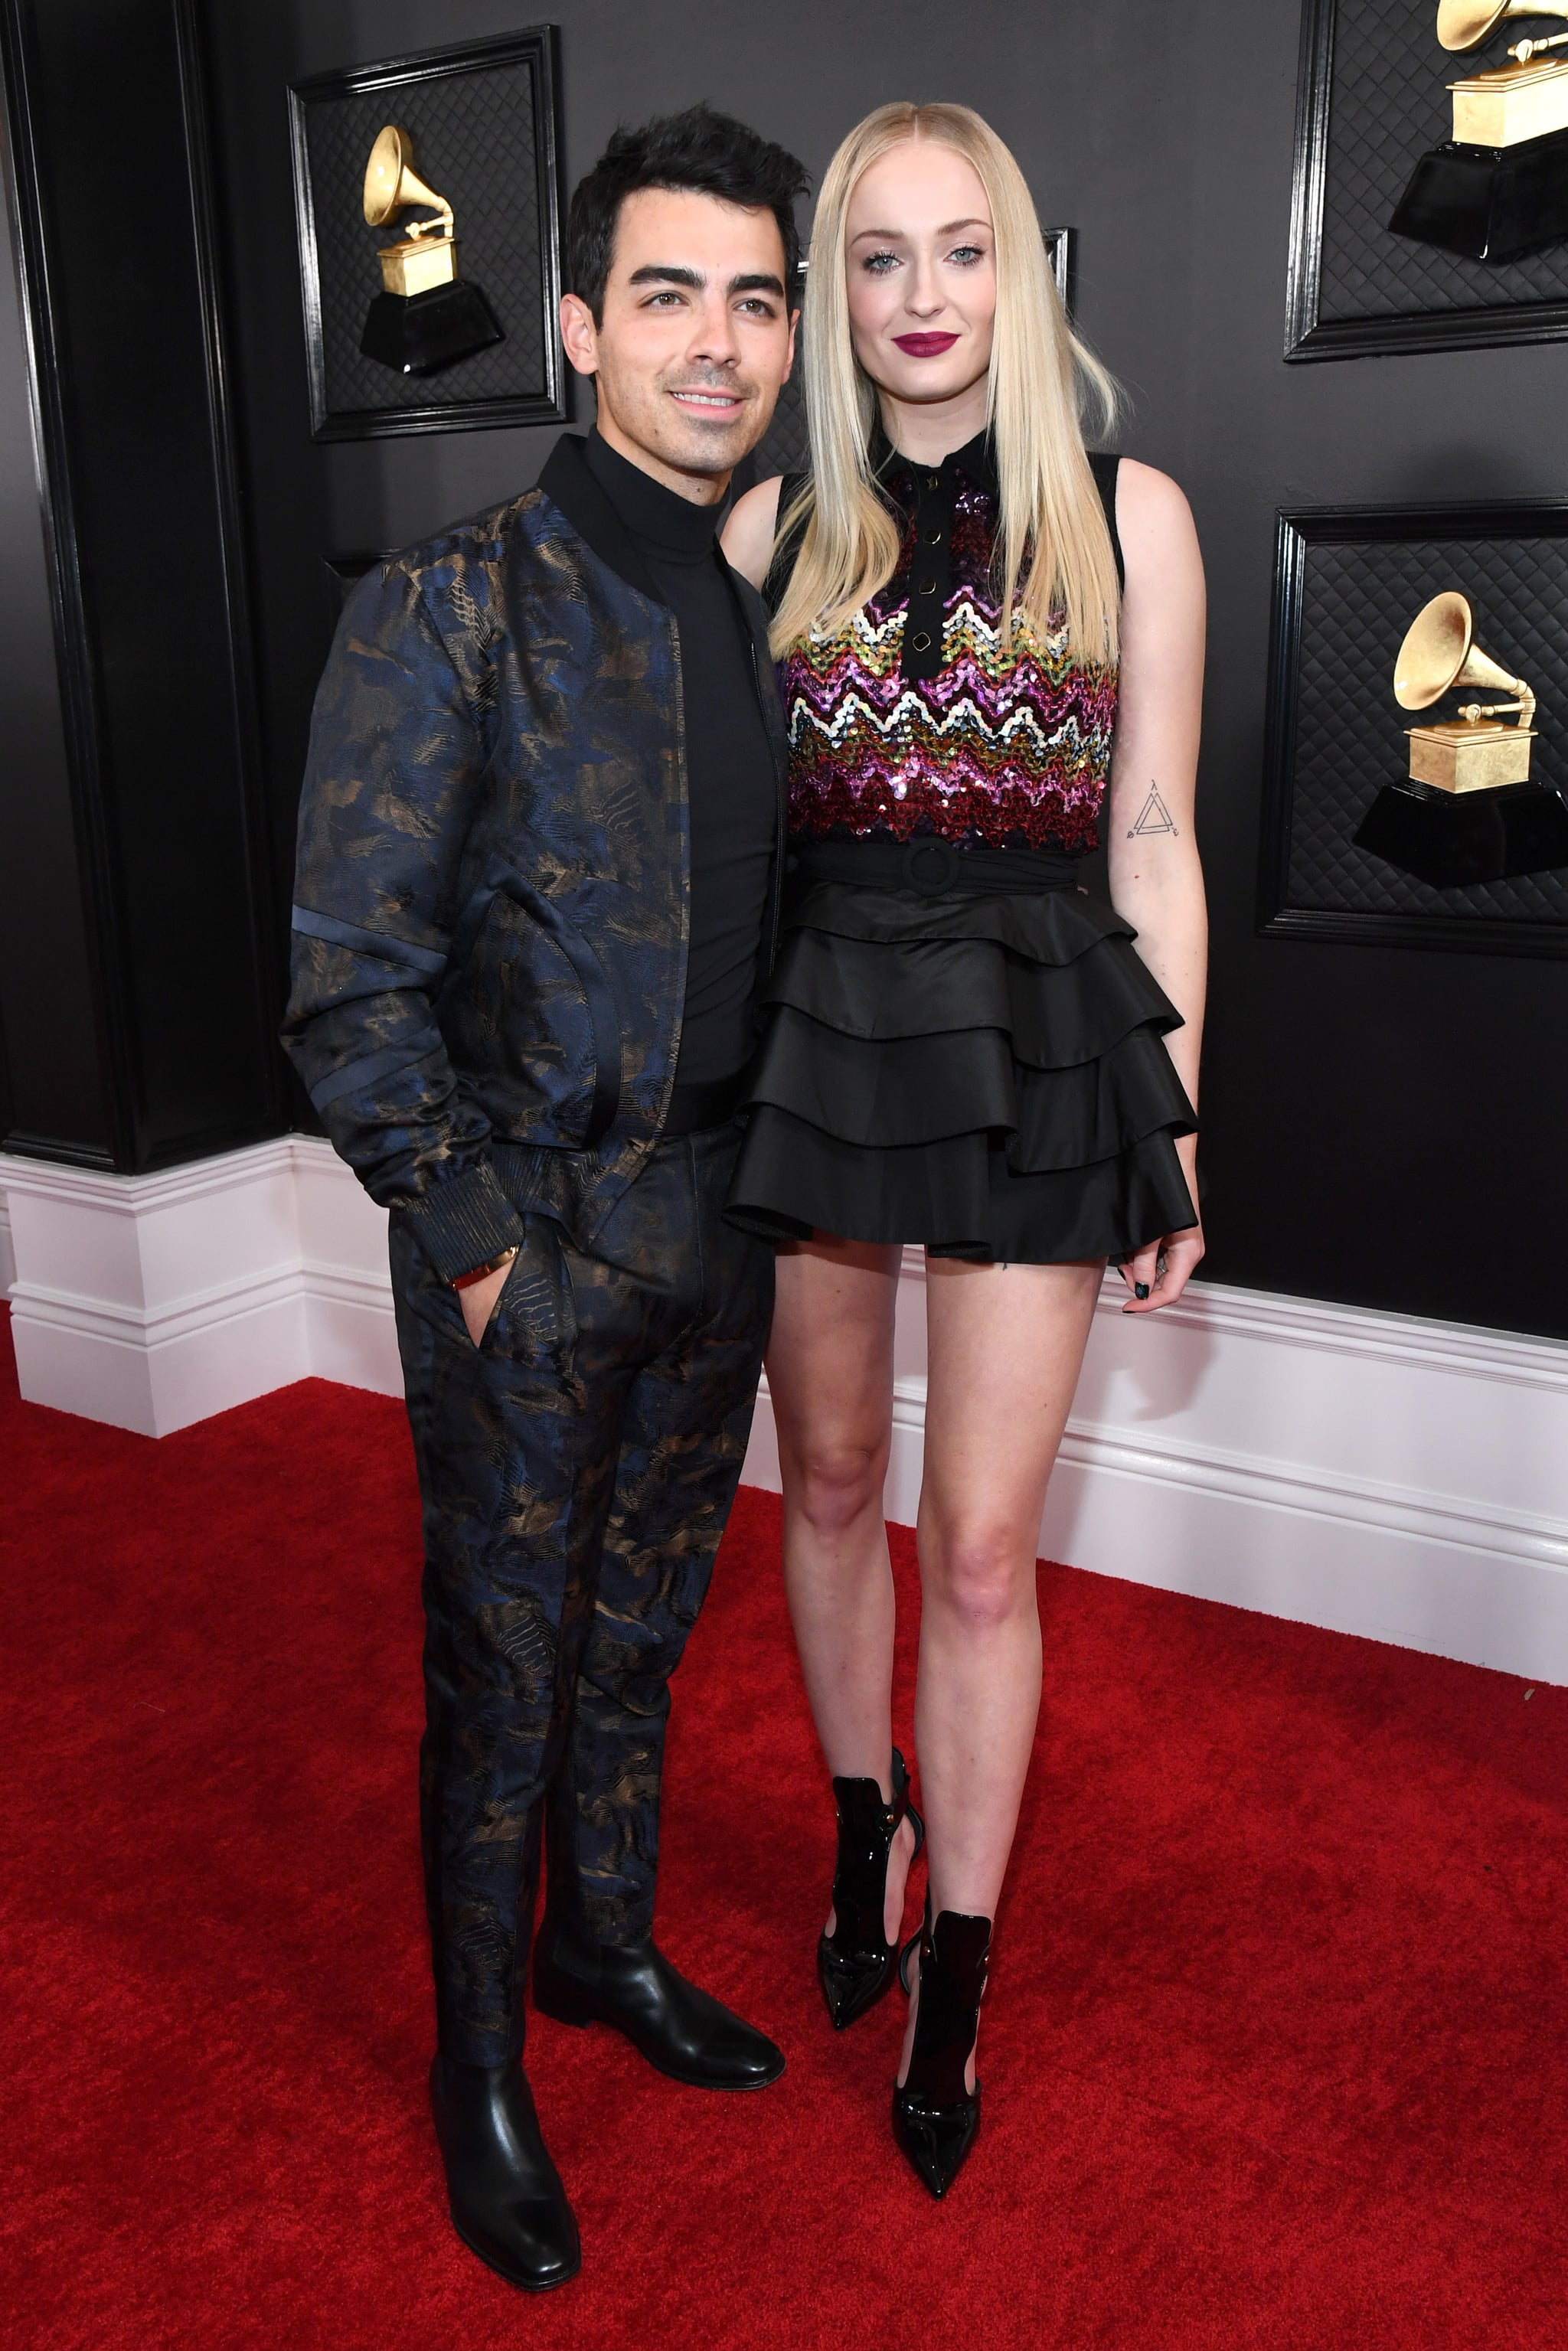 LOS ANGELES, CALIFORNIA - JANUARY 26: Joe Jonas and  Sophie Turner attend the 62nd Annual GRAMMY Awards at STAPLES Centre on January 26, 2020 in Los Angeles, California. (Photo by Kevin Mazur/Getty Images for The Recording Academy)